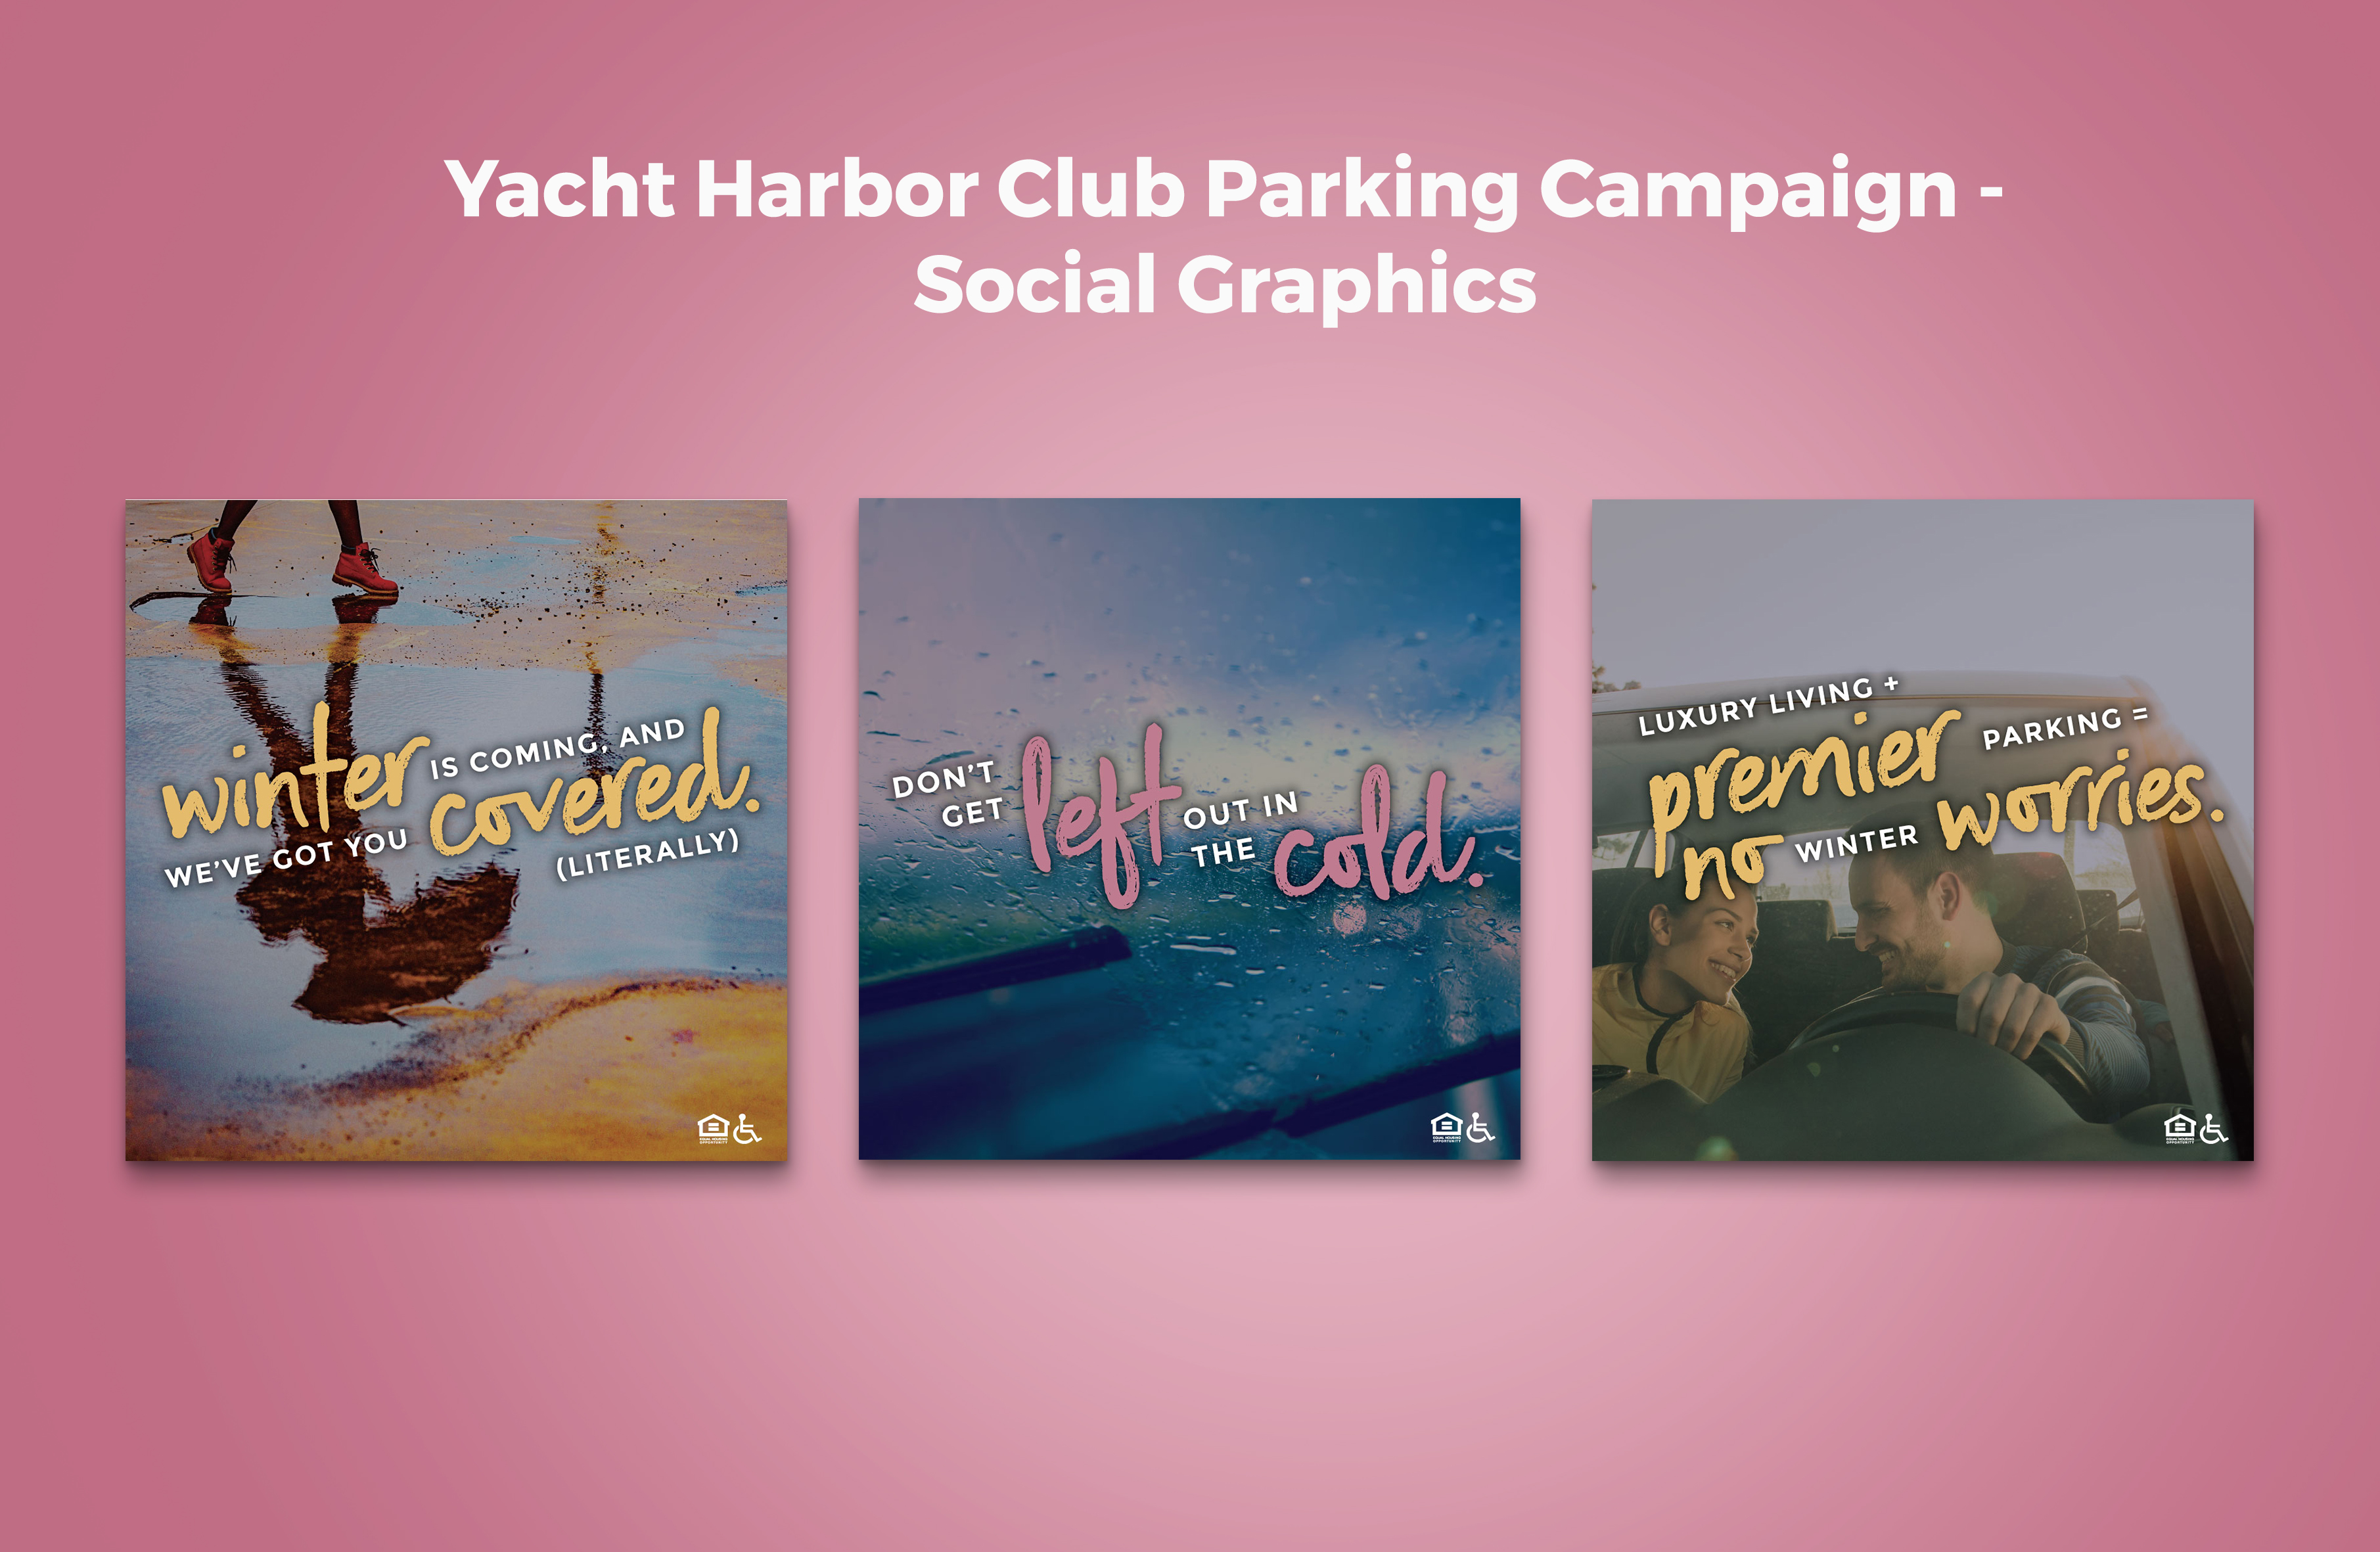 Yacht Harbor Club Parking Campaign Social Graphics